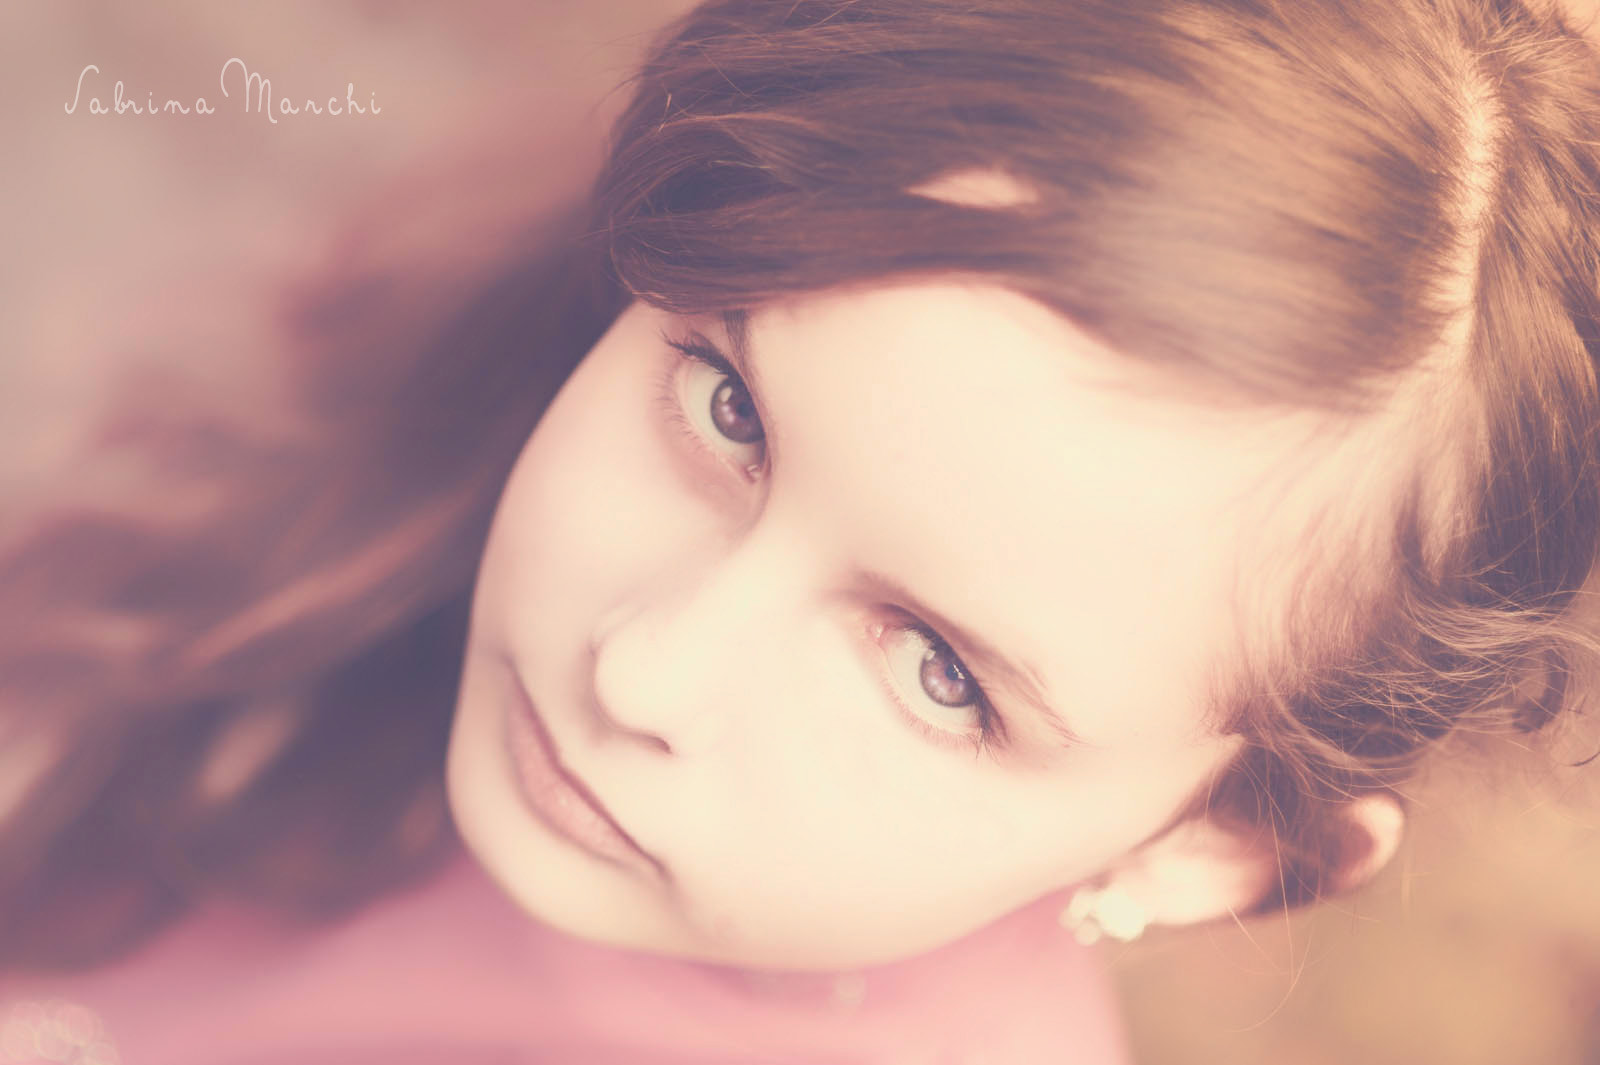 Photograph Adorable little girl by Sabrina Marchi on 500px